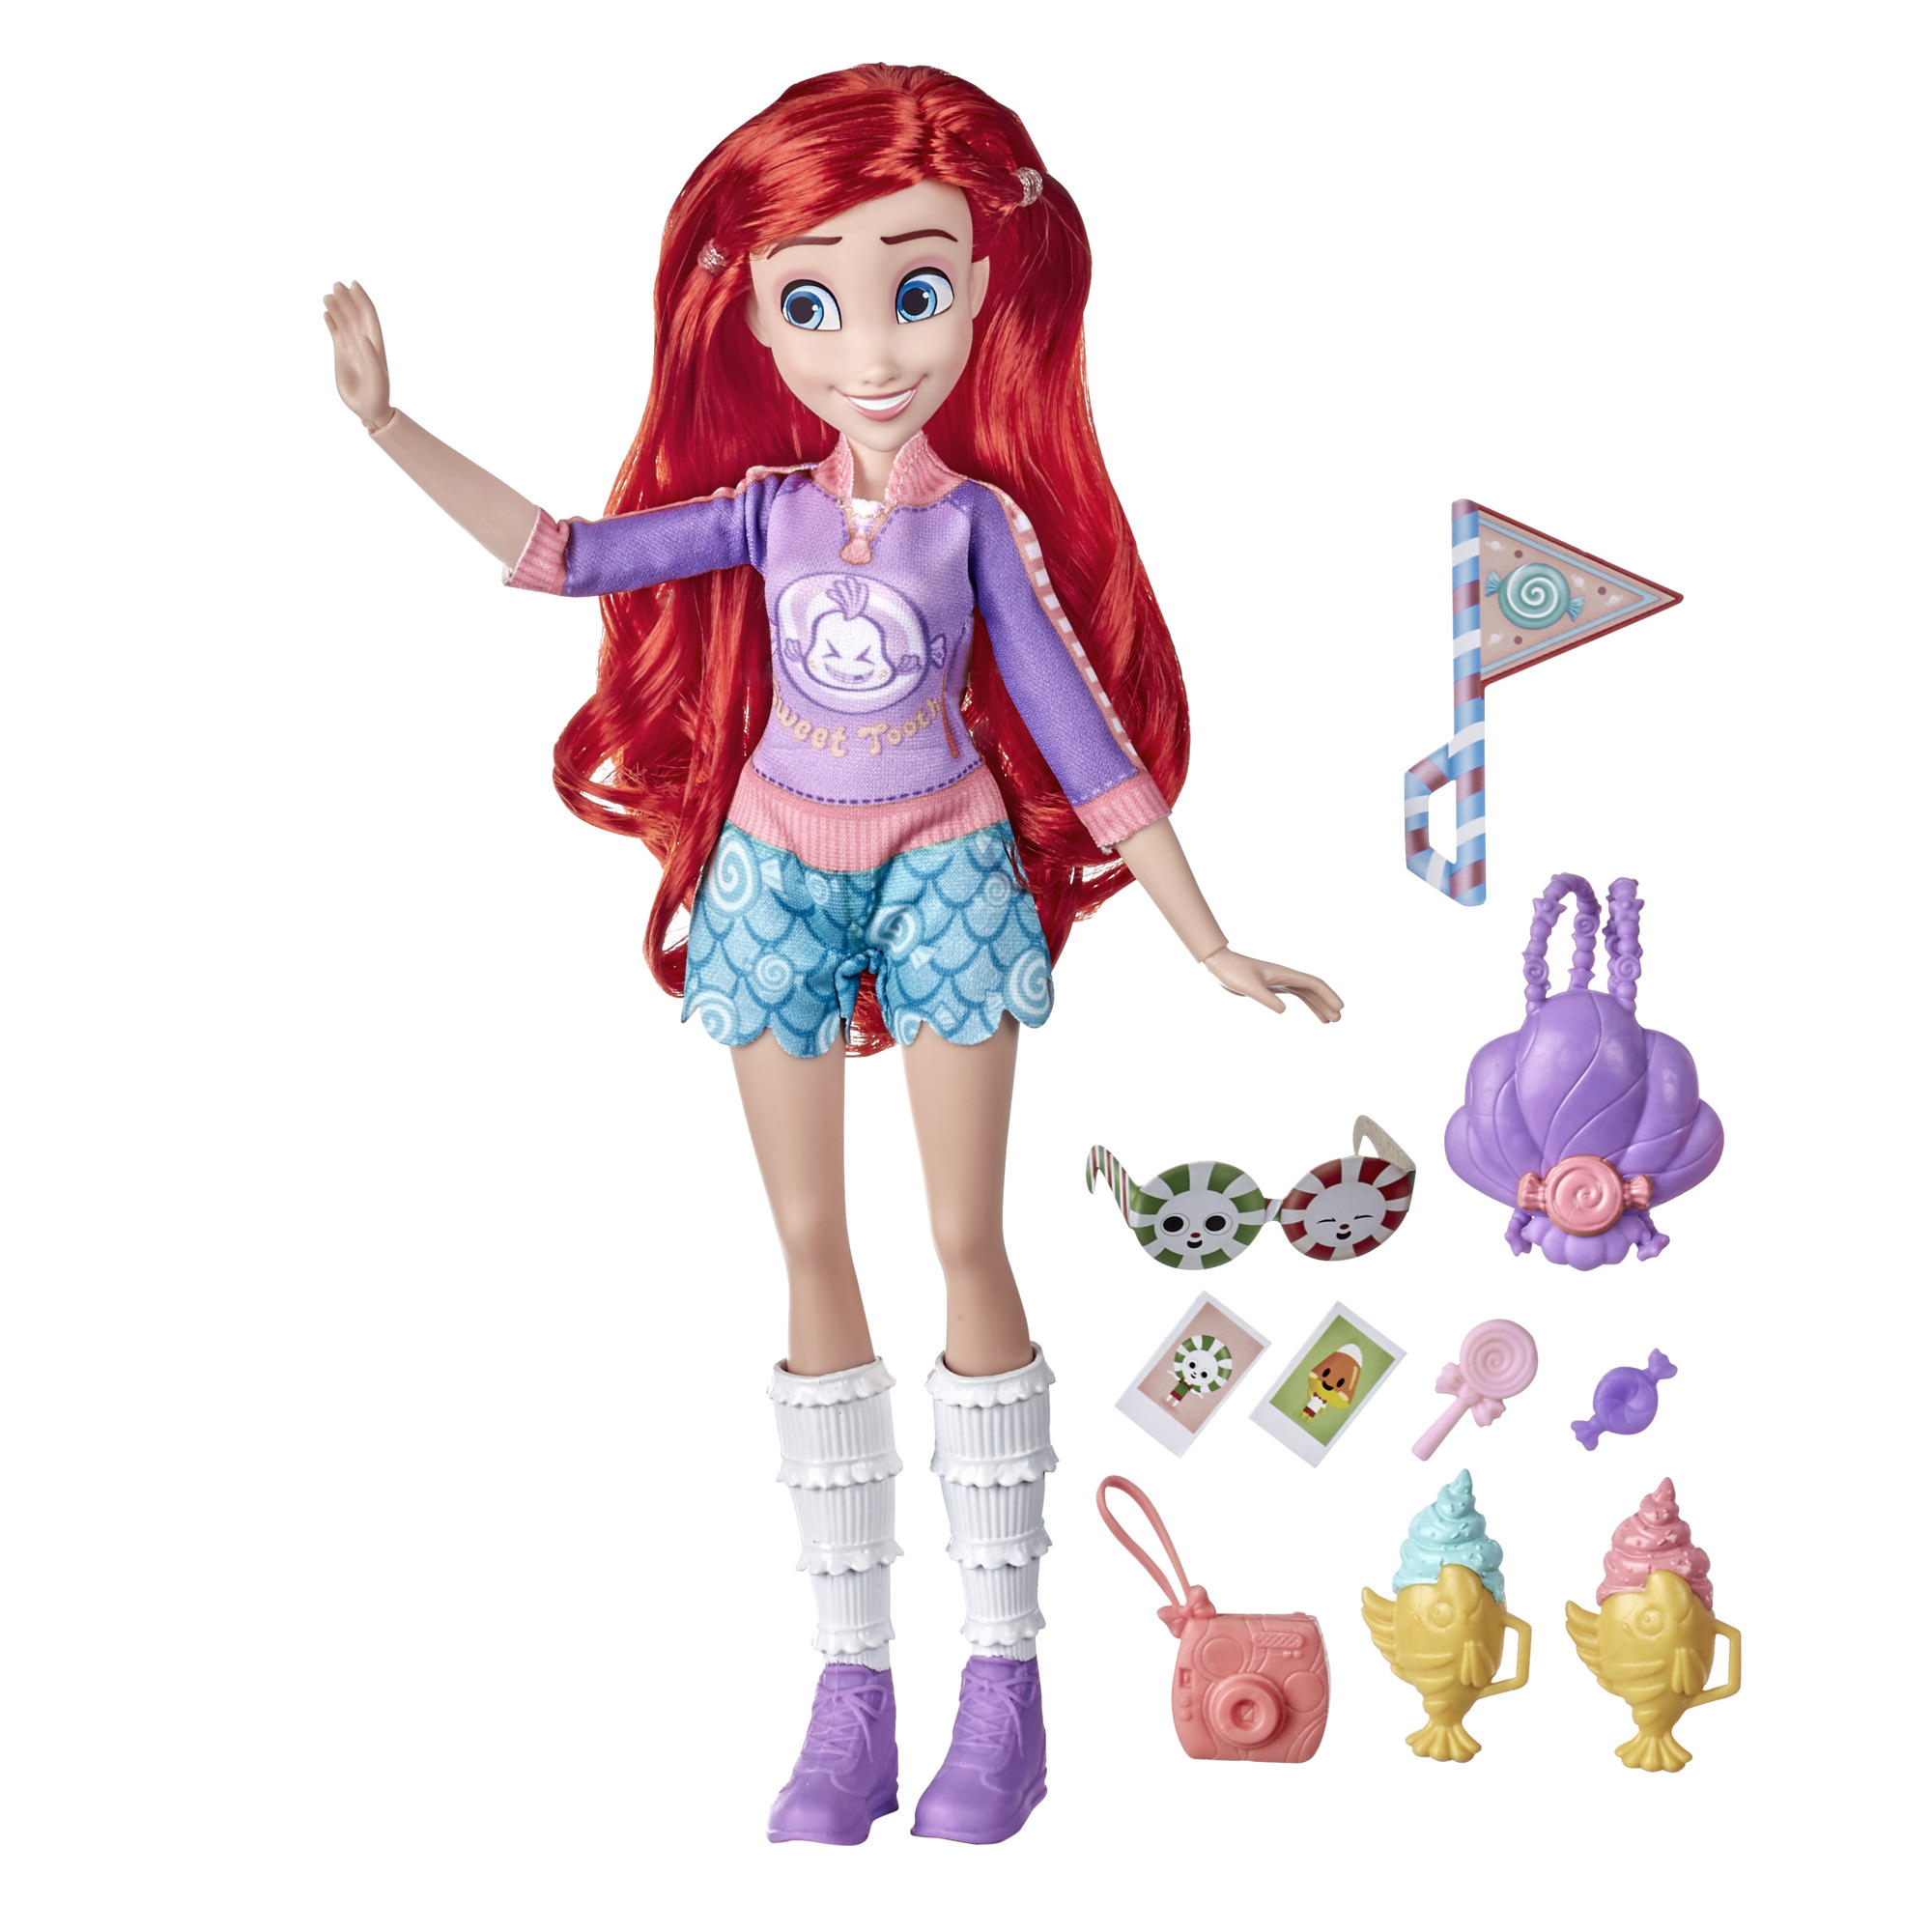 Disney Princess Comfy Squad Sugar Style Ariel Fashion Doll with Outfit and Accessories, Toy for Girls 5 Years and Up